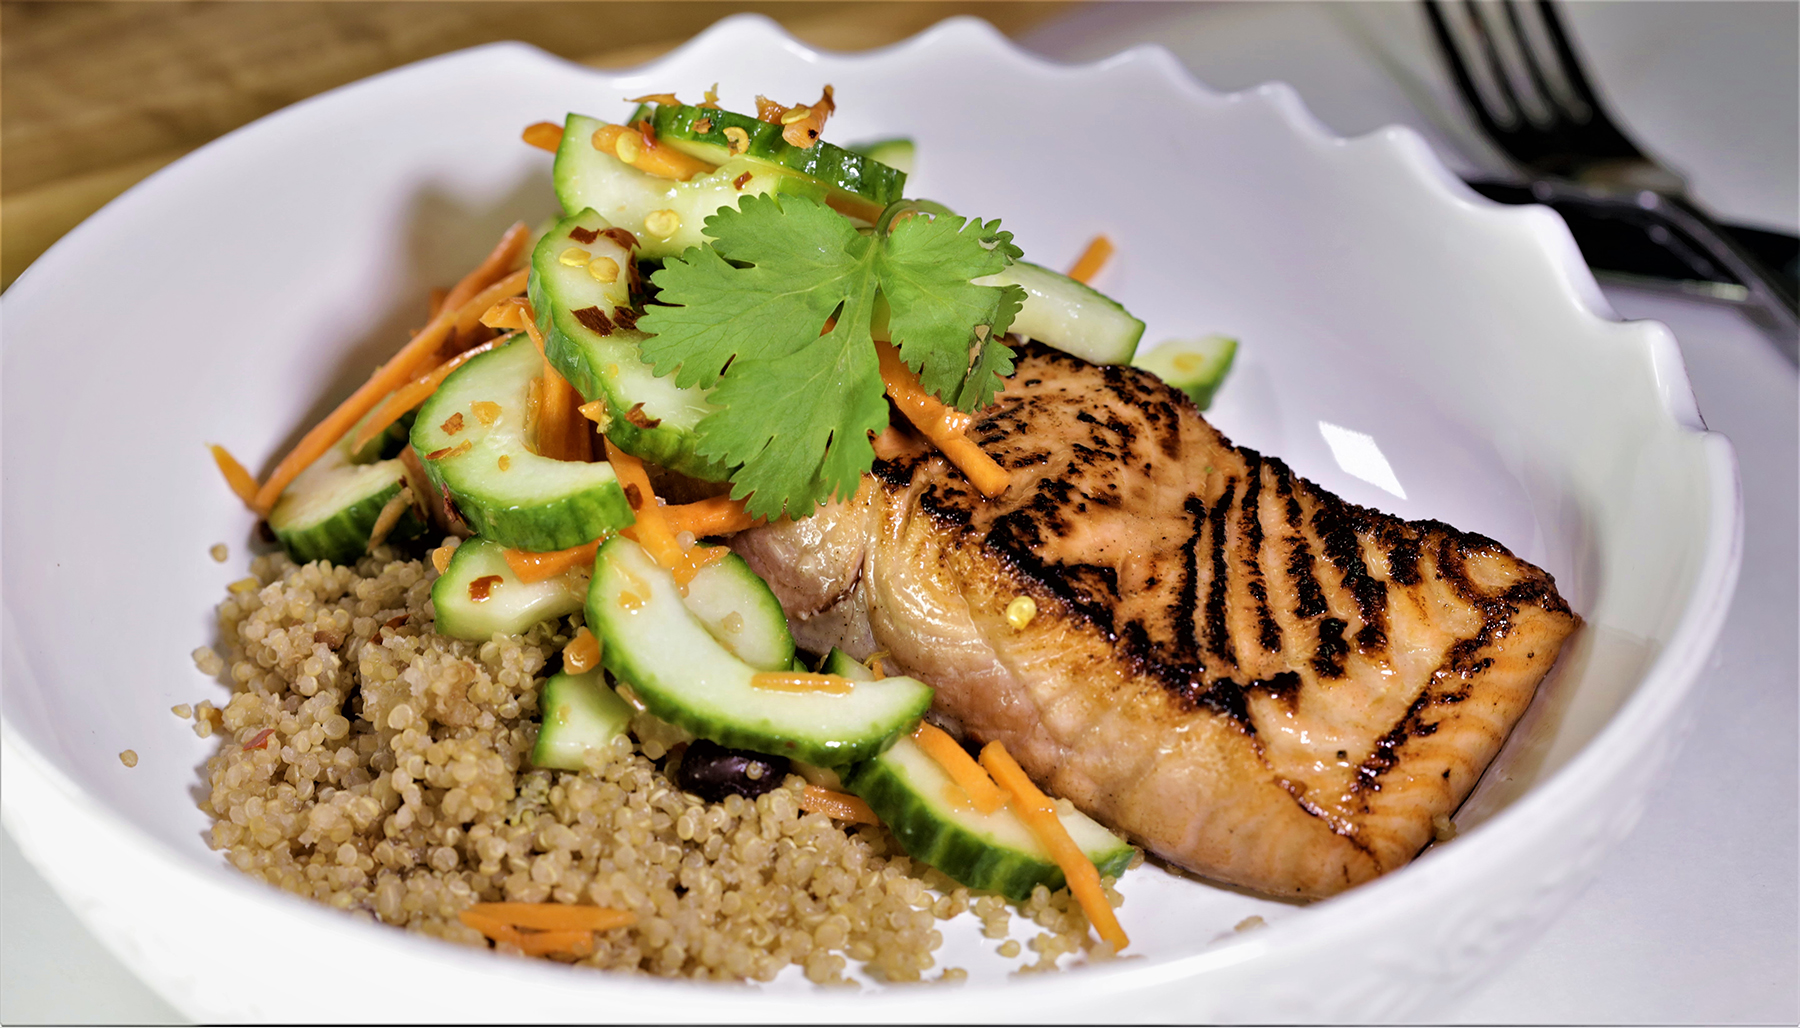 Lunchology meal plan with salmon and fresh vegetables ready for delivery